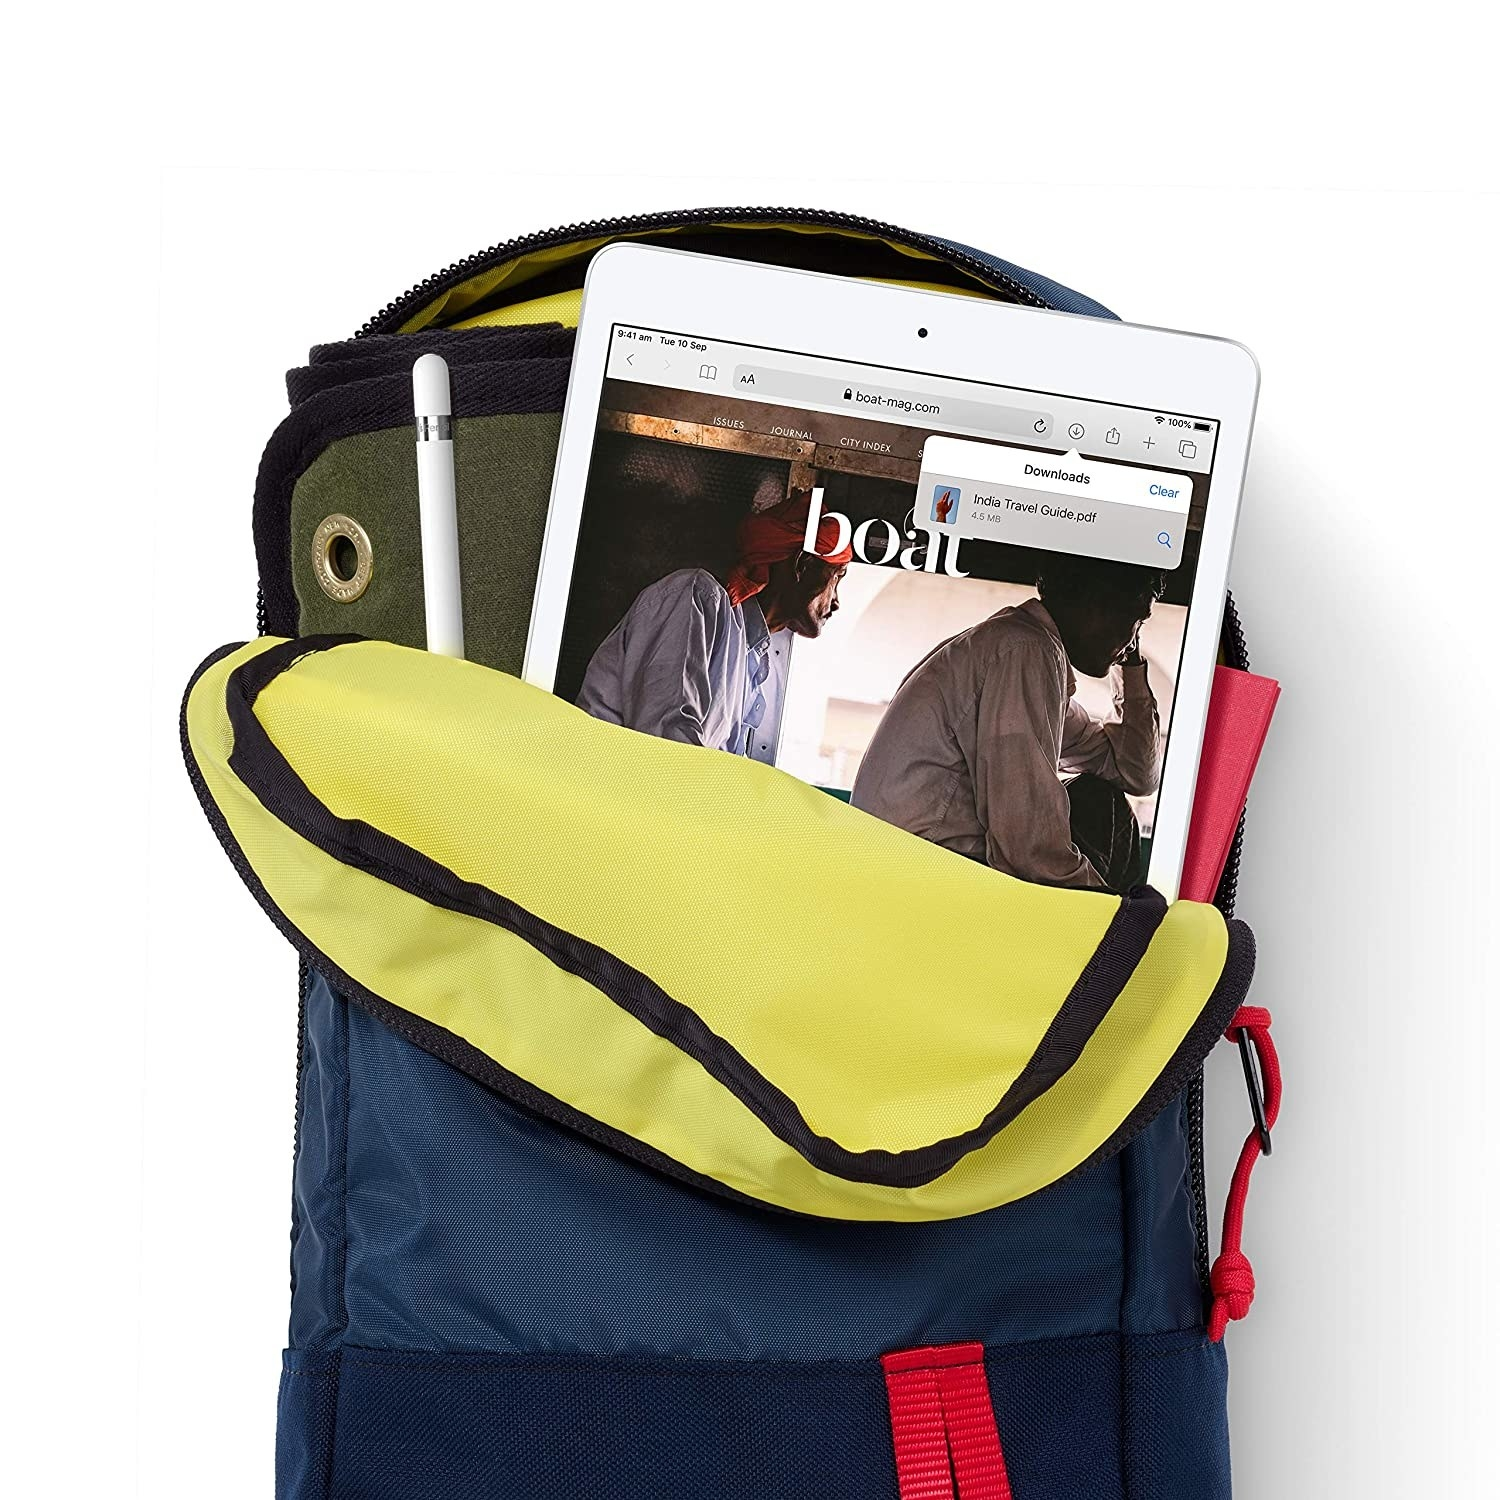 An iPad and Apple Pencil kept in a half-open bag.